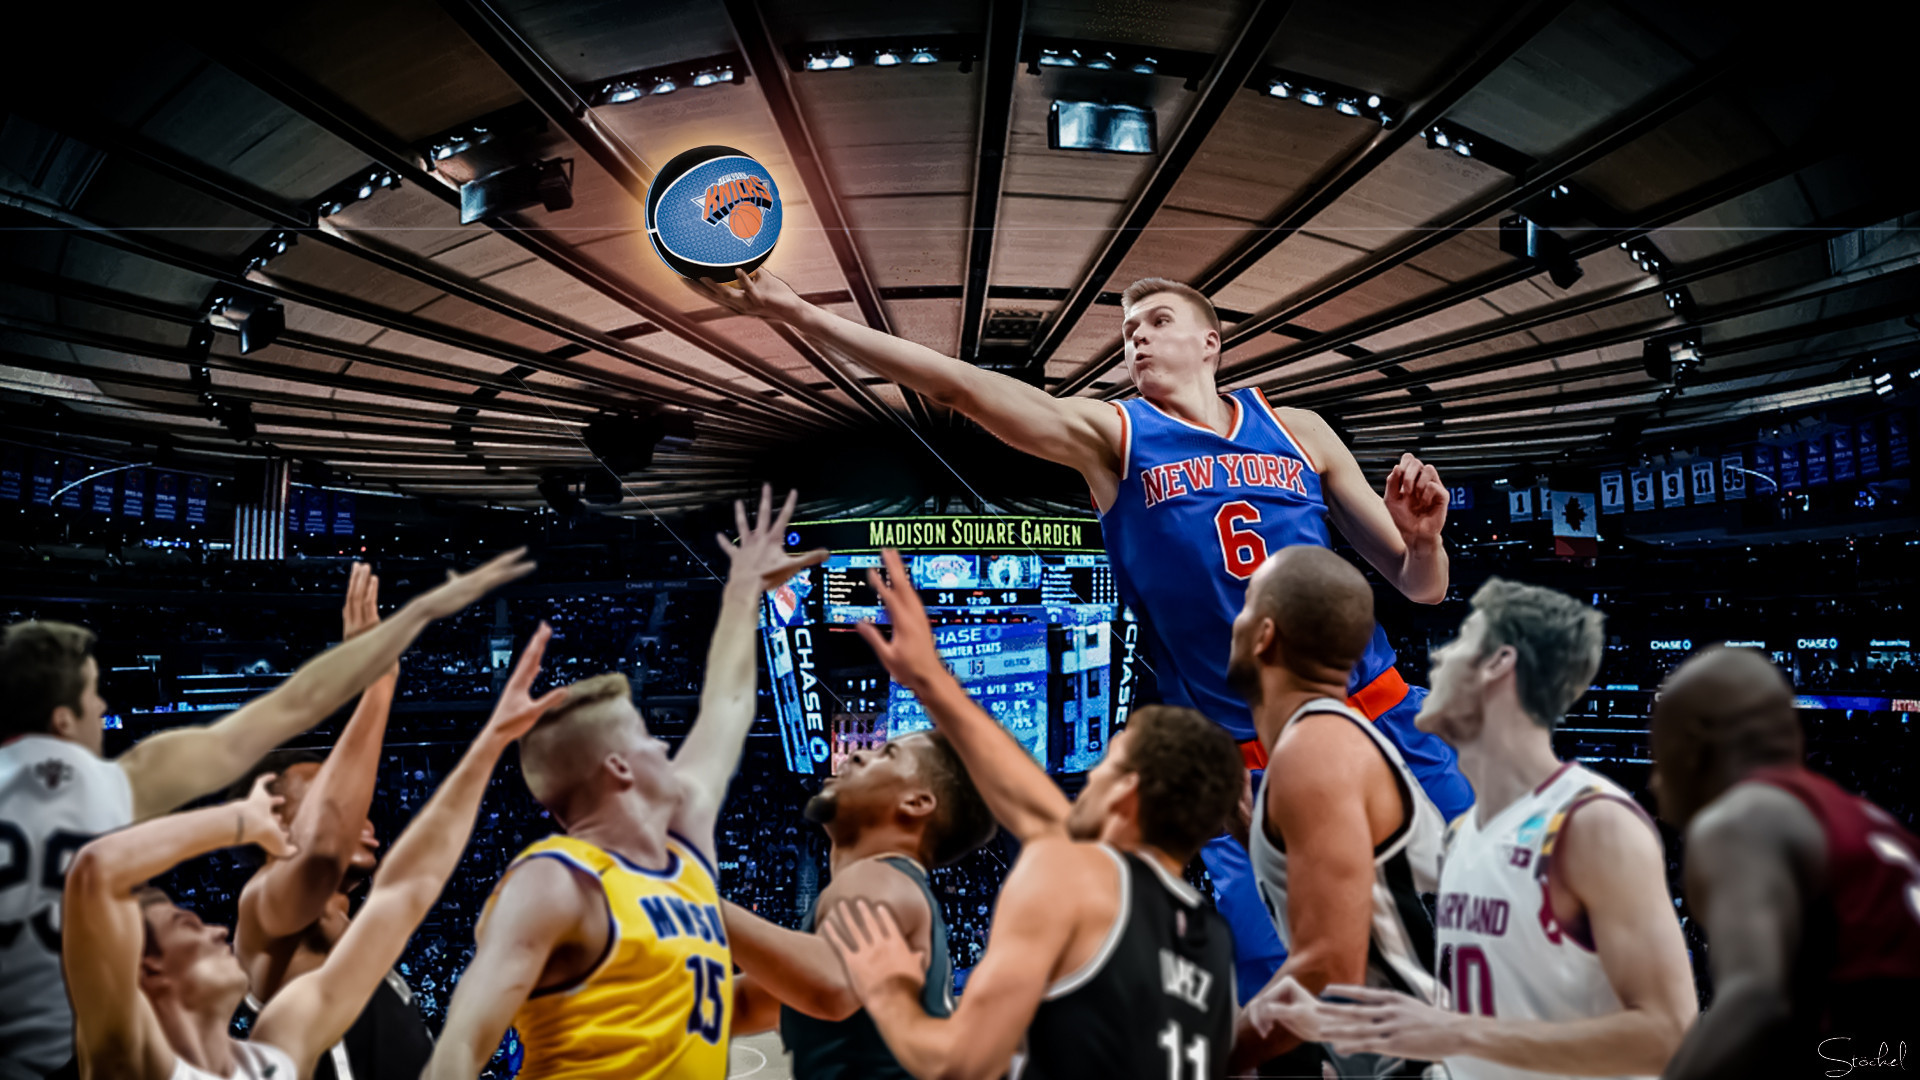 Kristaps porzingis knicks wallpaper 83 images 1920x1080 knicks wallpaper lying on hospital bed waiting for surgery and decided to cheer voltagebd Image collections